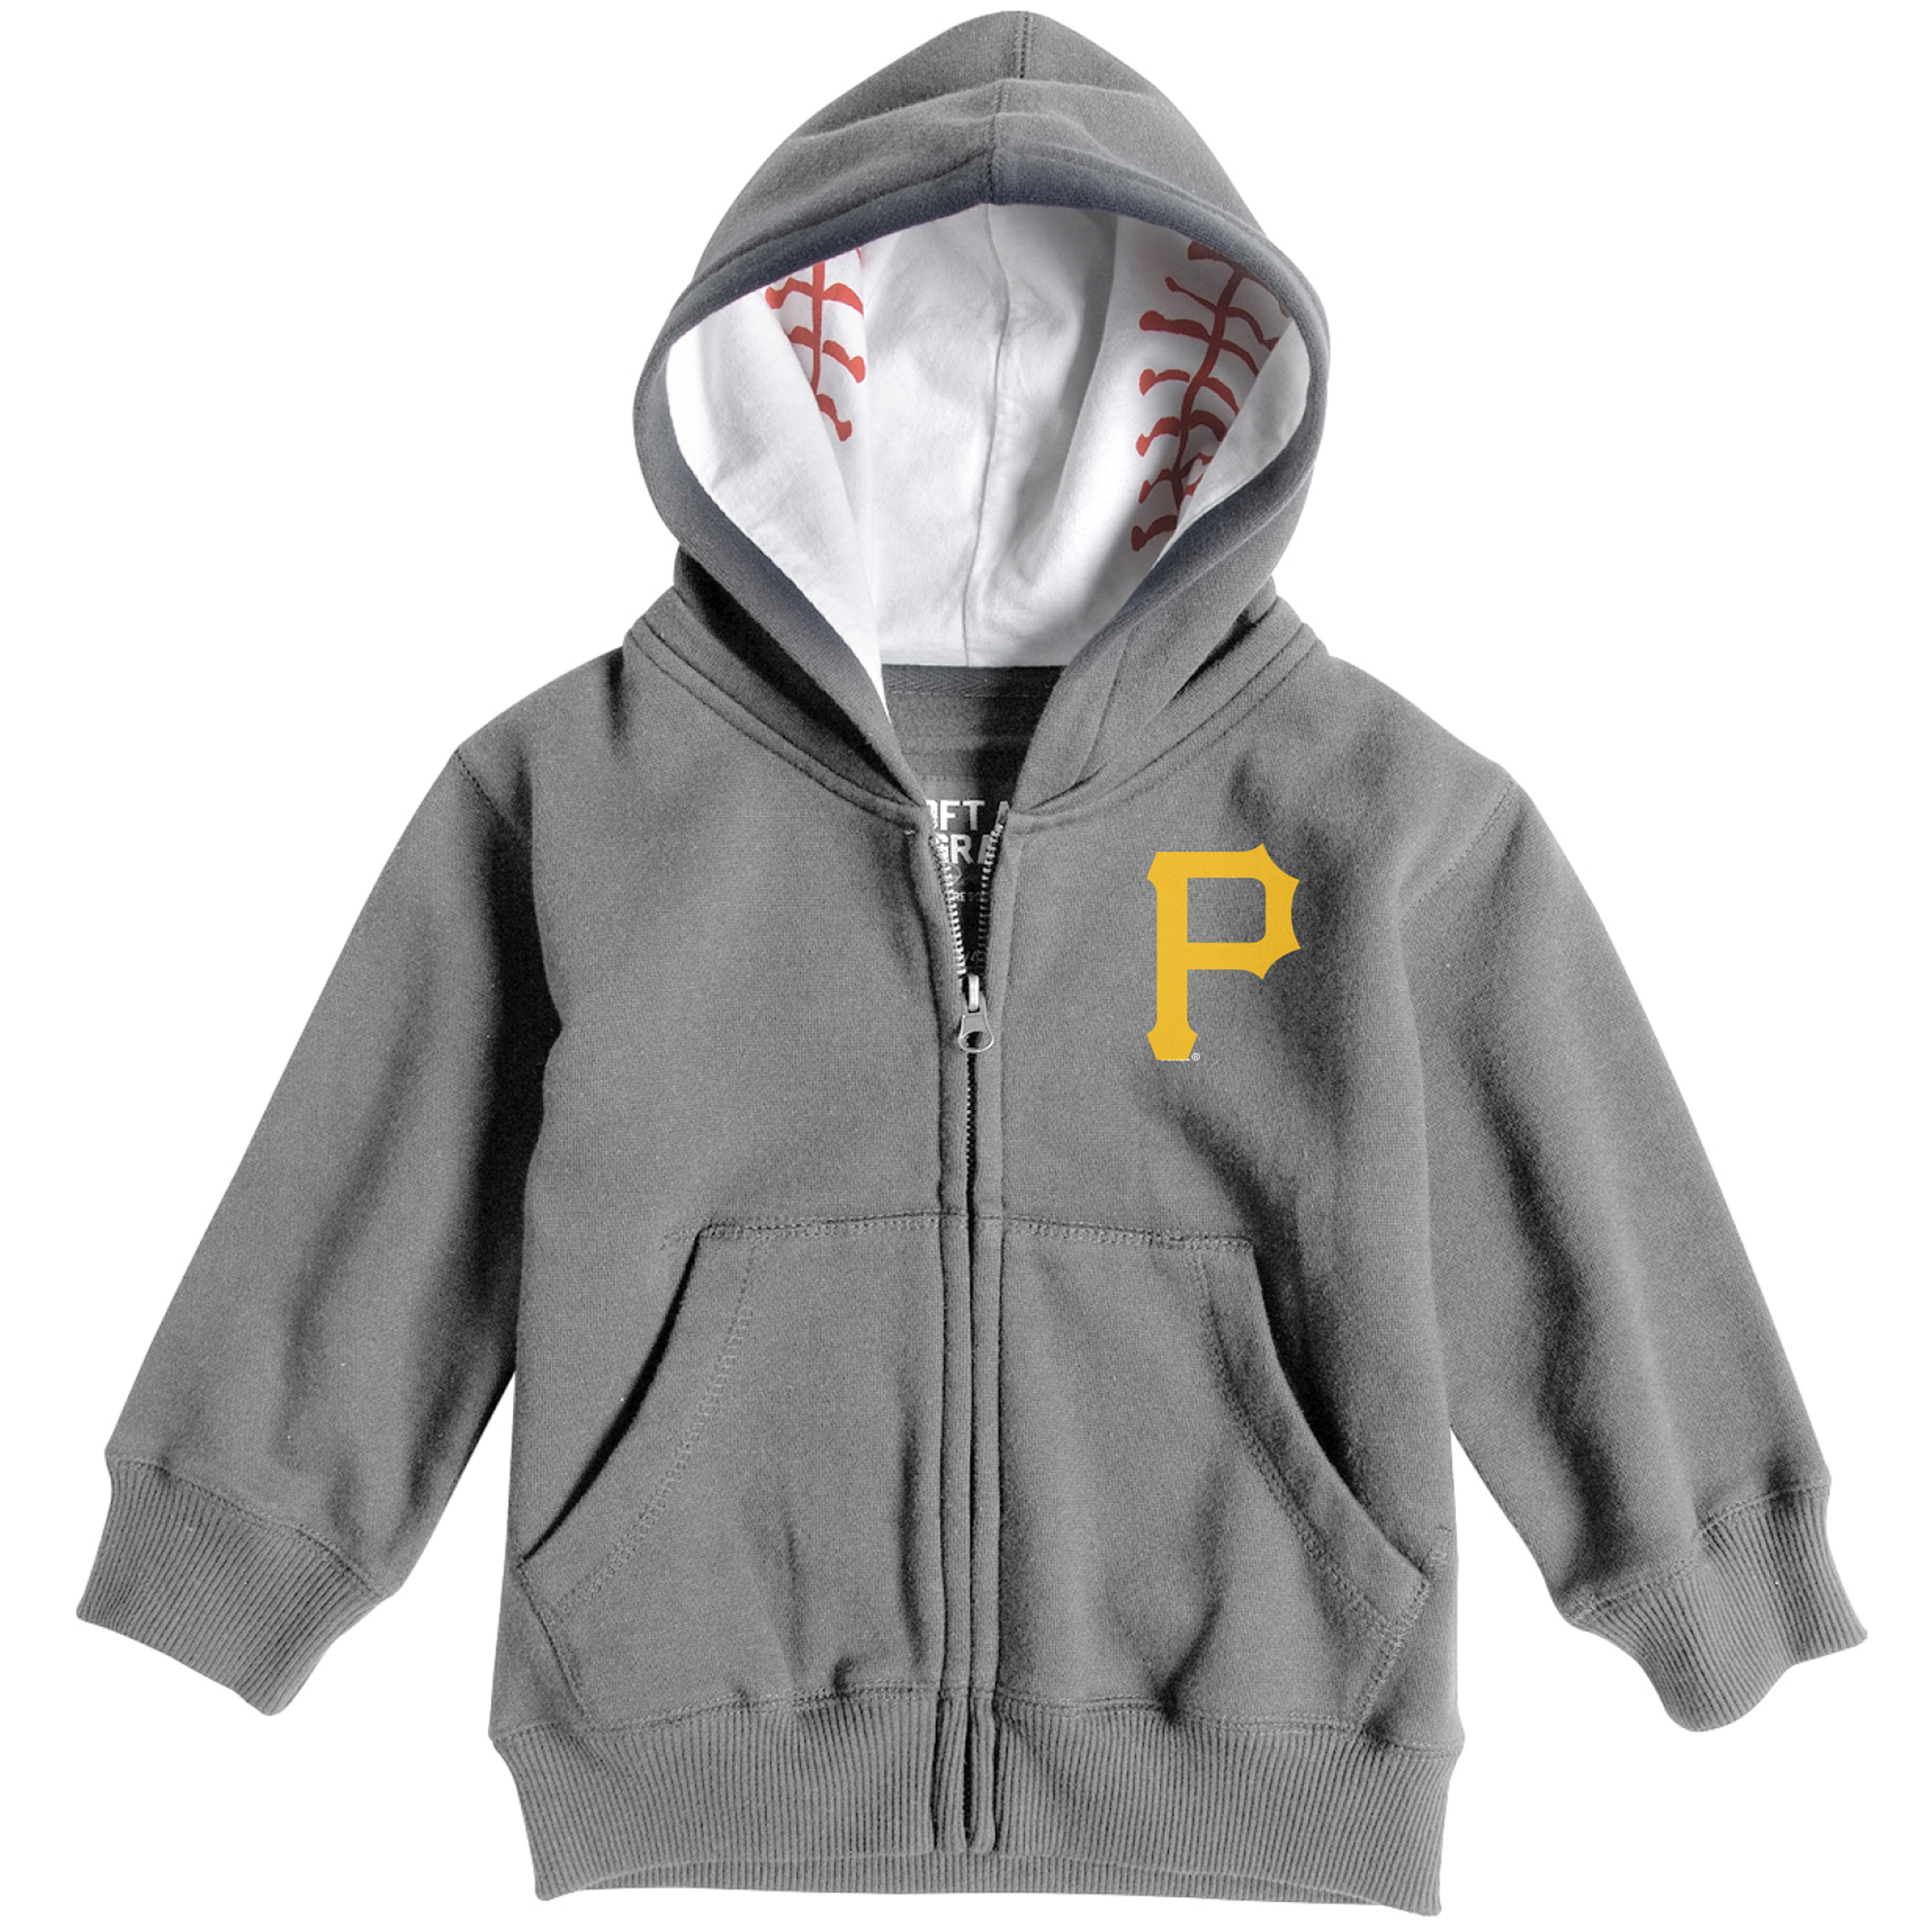 Pittsburgh Pirates Soft as a Grape Toddler Baseball Print Full-Zip Hoodie - Heathered Gray